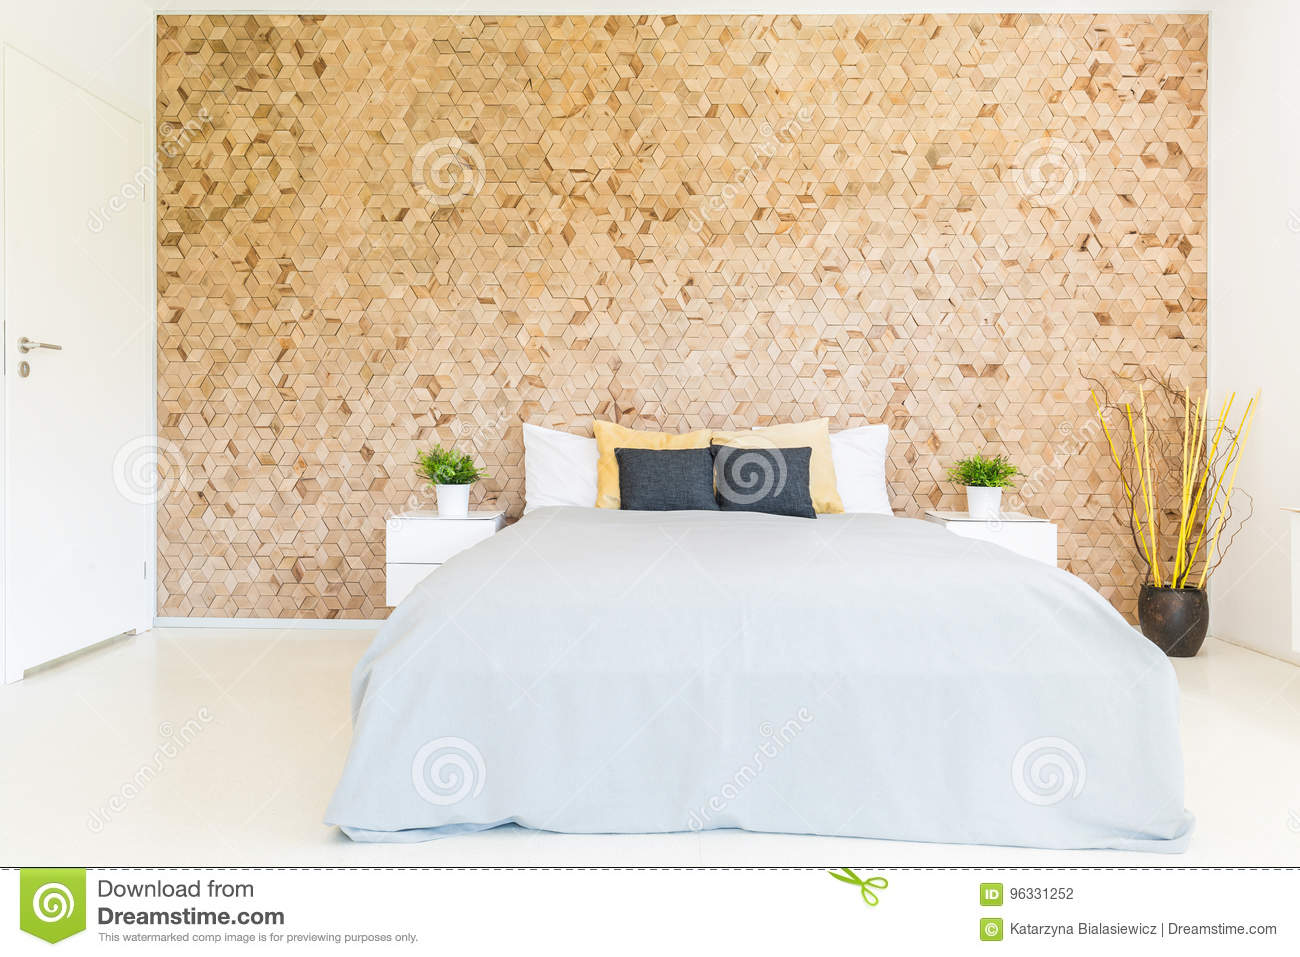 mosaic bedroom furniture. Bedroom With Wooden Mosaic Wall Stock Photo - Image Of Modern, Marriage: 96331252 Furniture N